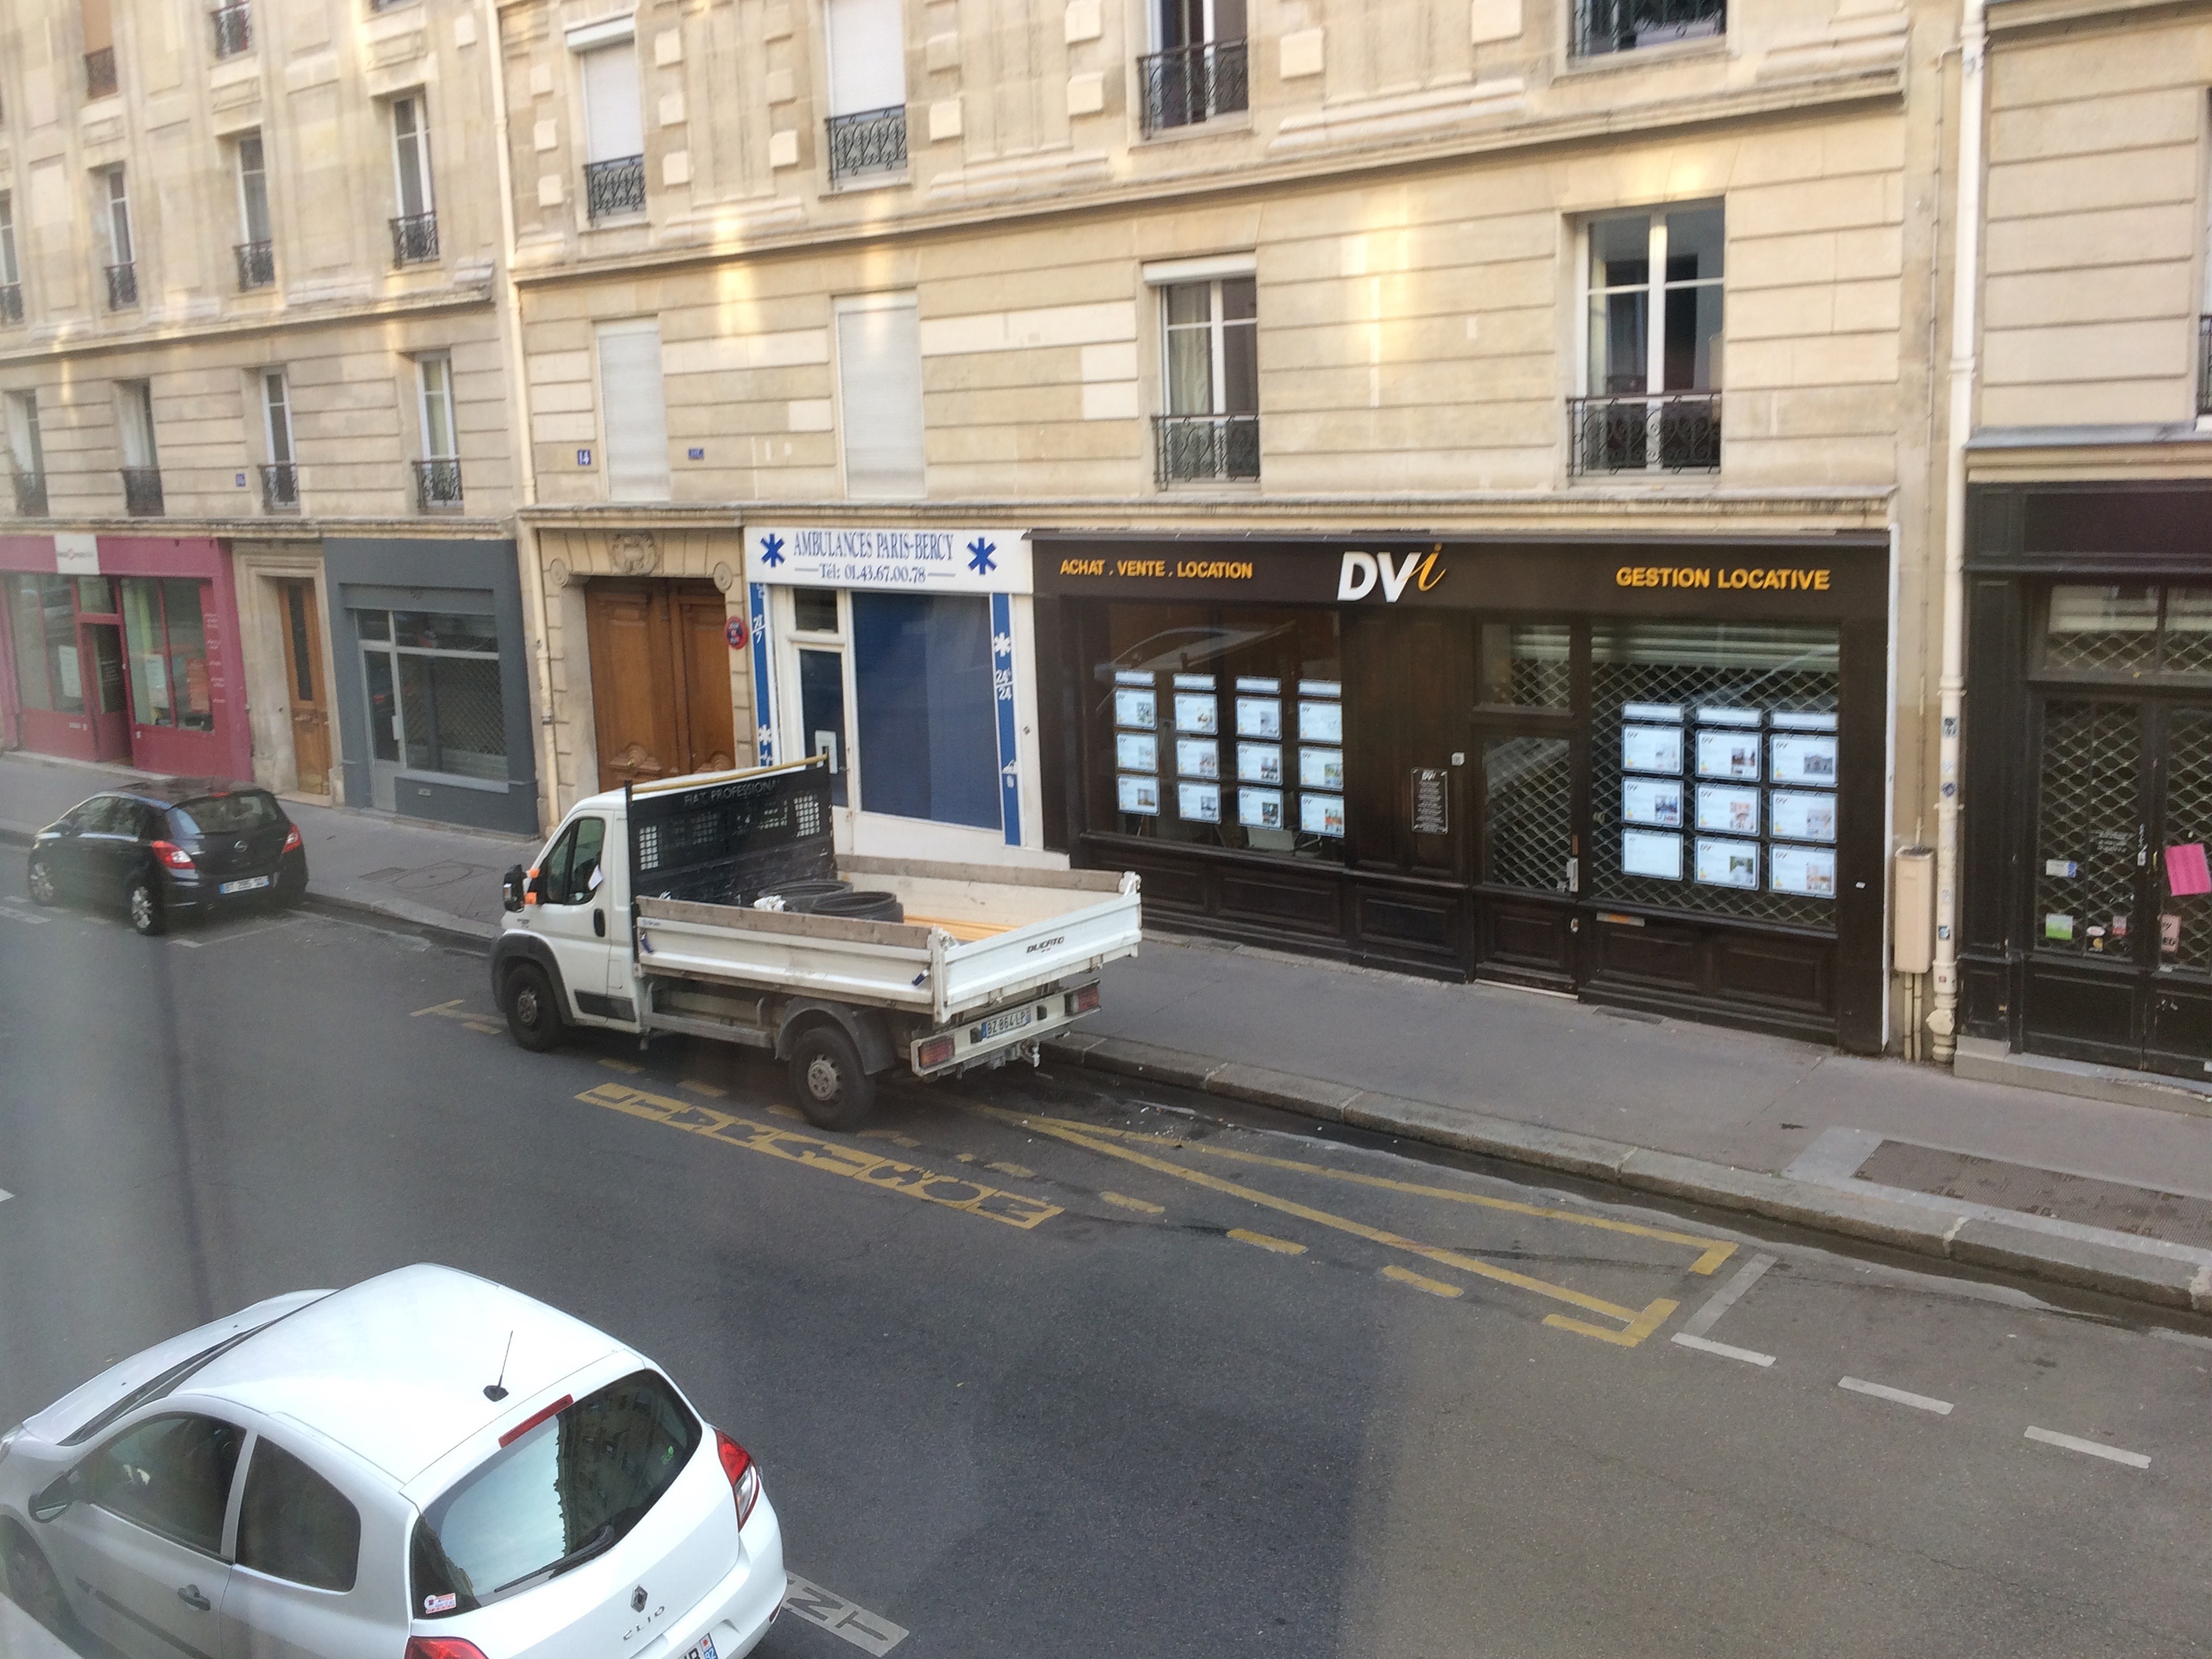 Location Parking Paris 16 File Rue Des Boulets Paris 12 August 2015 Jpg Wikimedia Commons